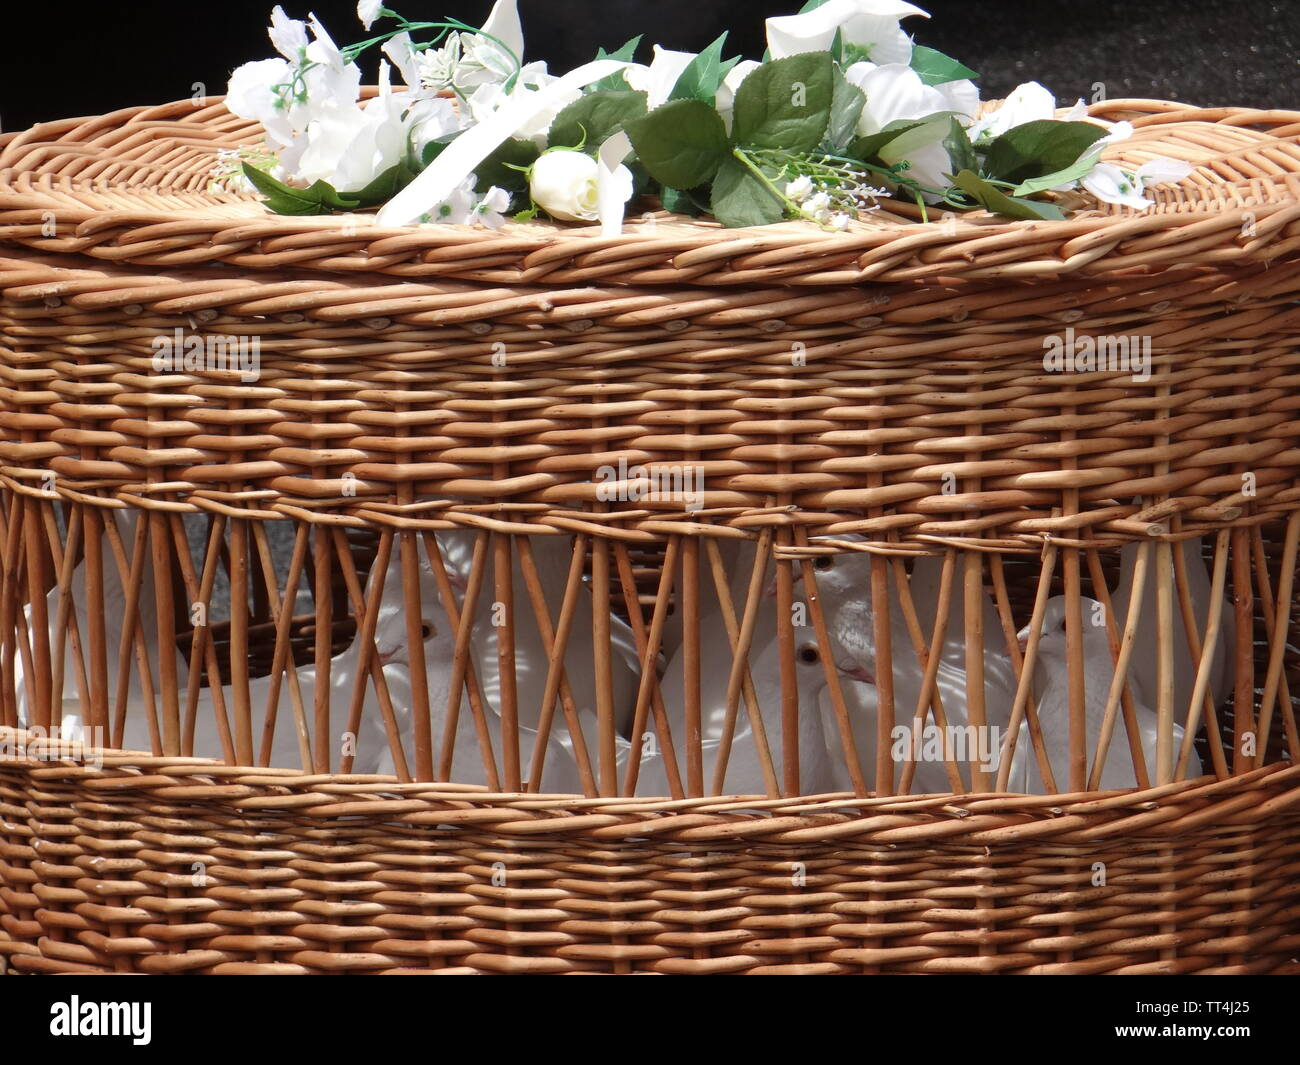 Two years of Grenfell Tower Fire, commemoration service, London, UK - Stock Image